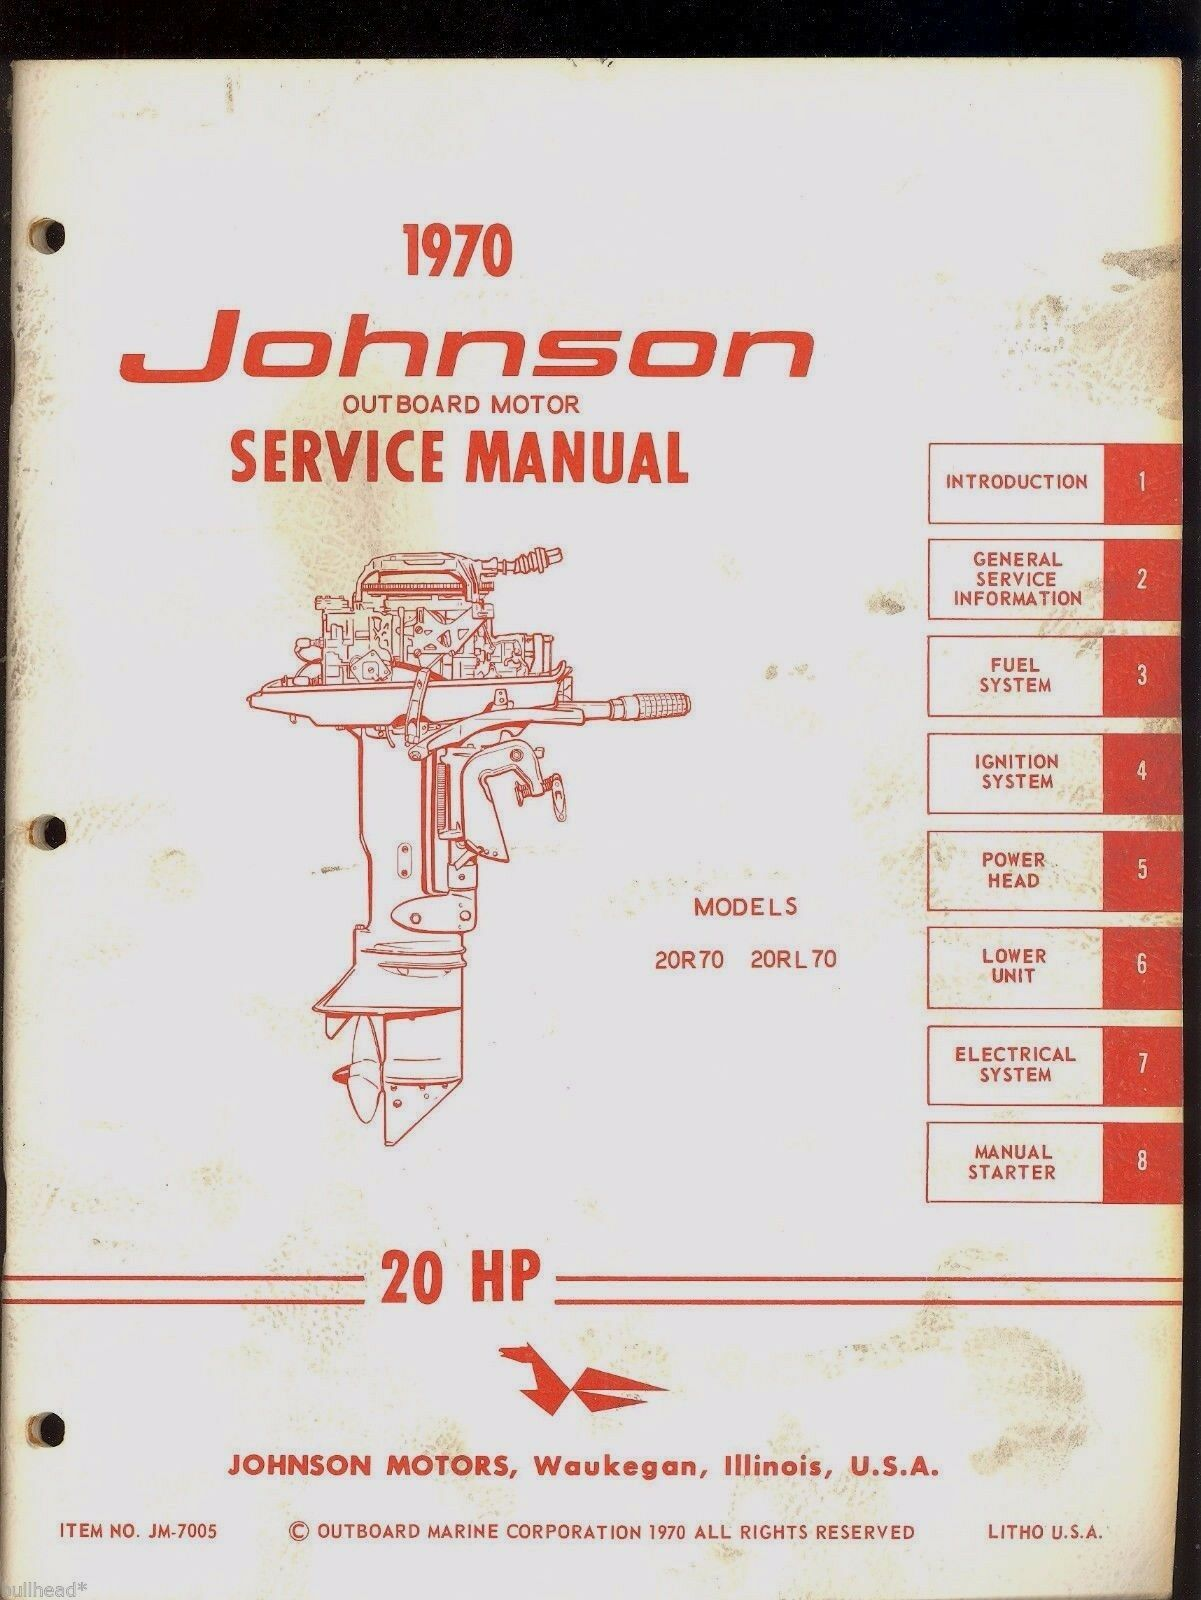 1970 Johnson 20Hp Outboard Service Manual / Models 20R70, 20Rl70 / Jm-7005  1 of 5Only 1 available ...